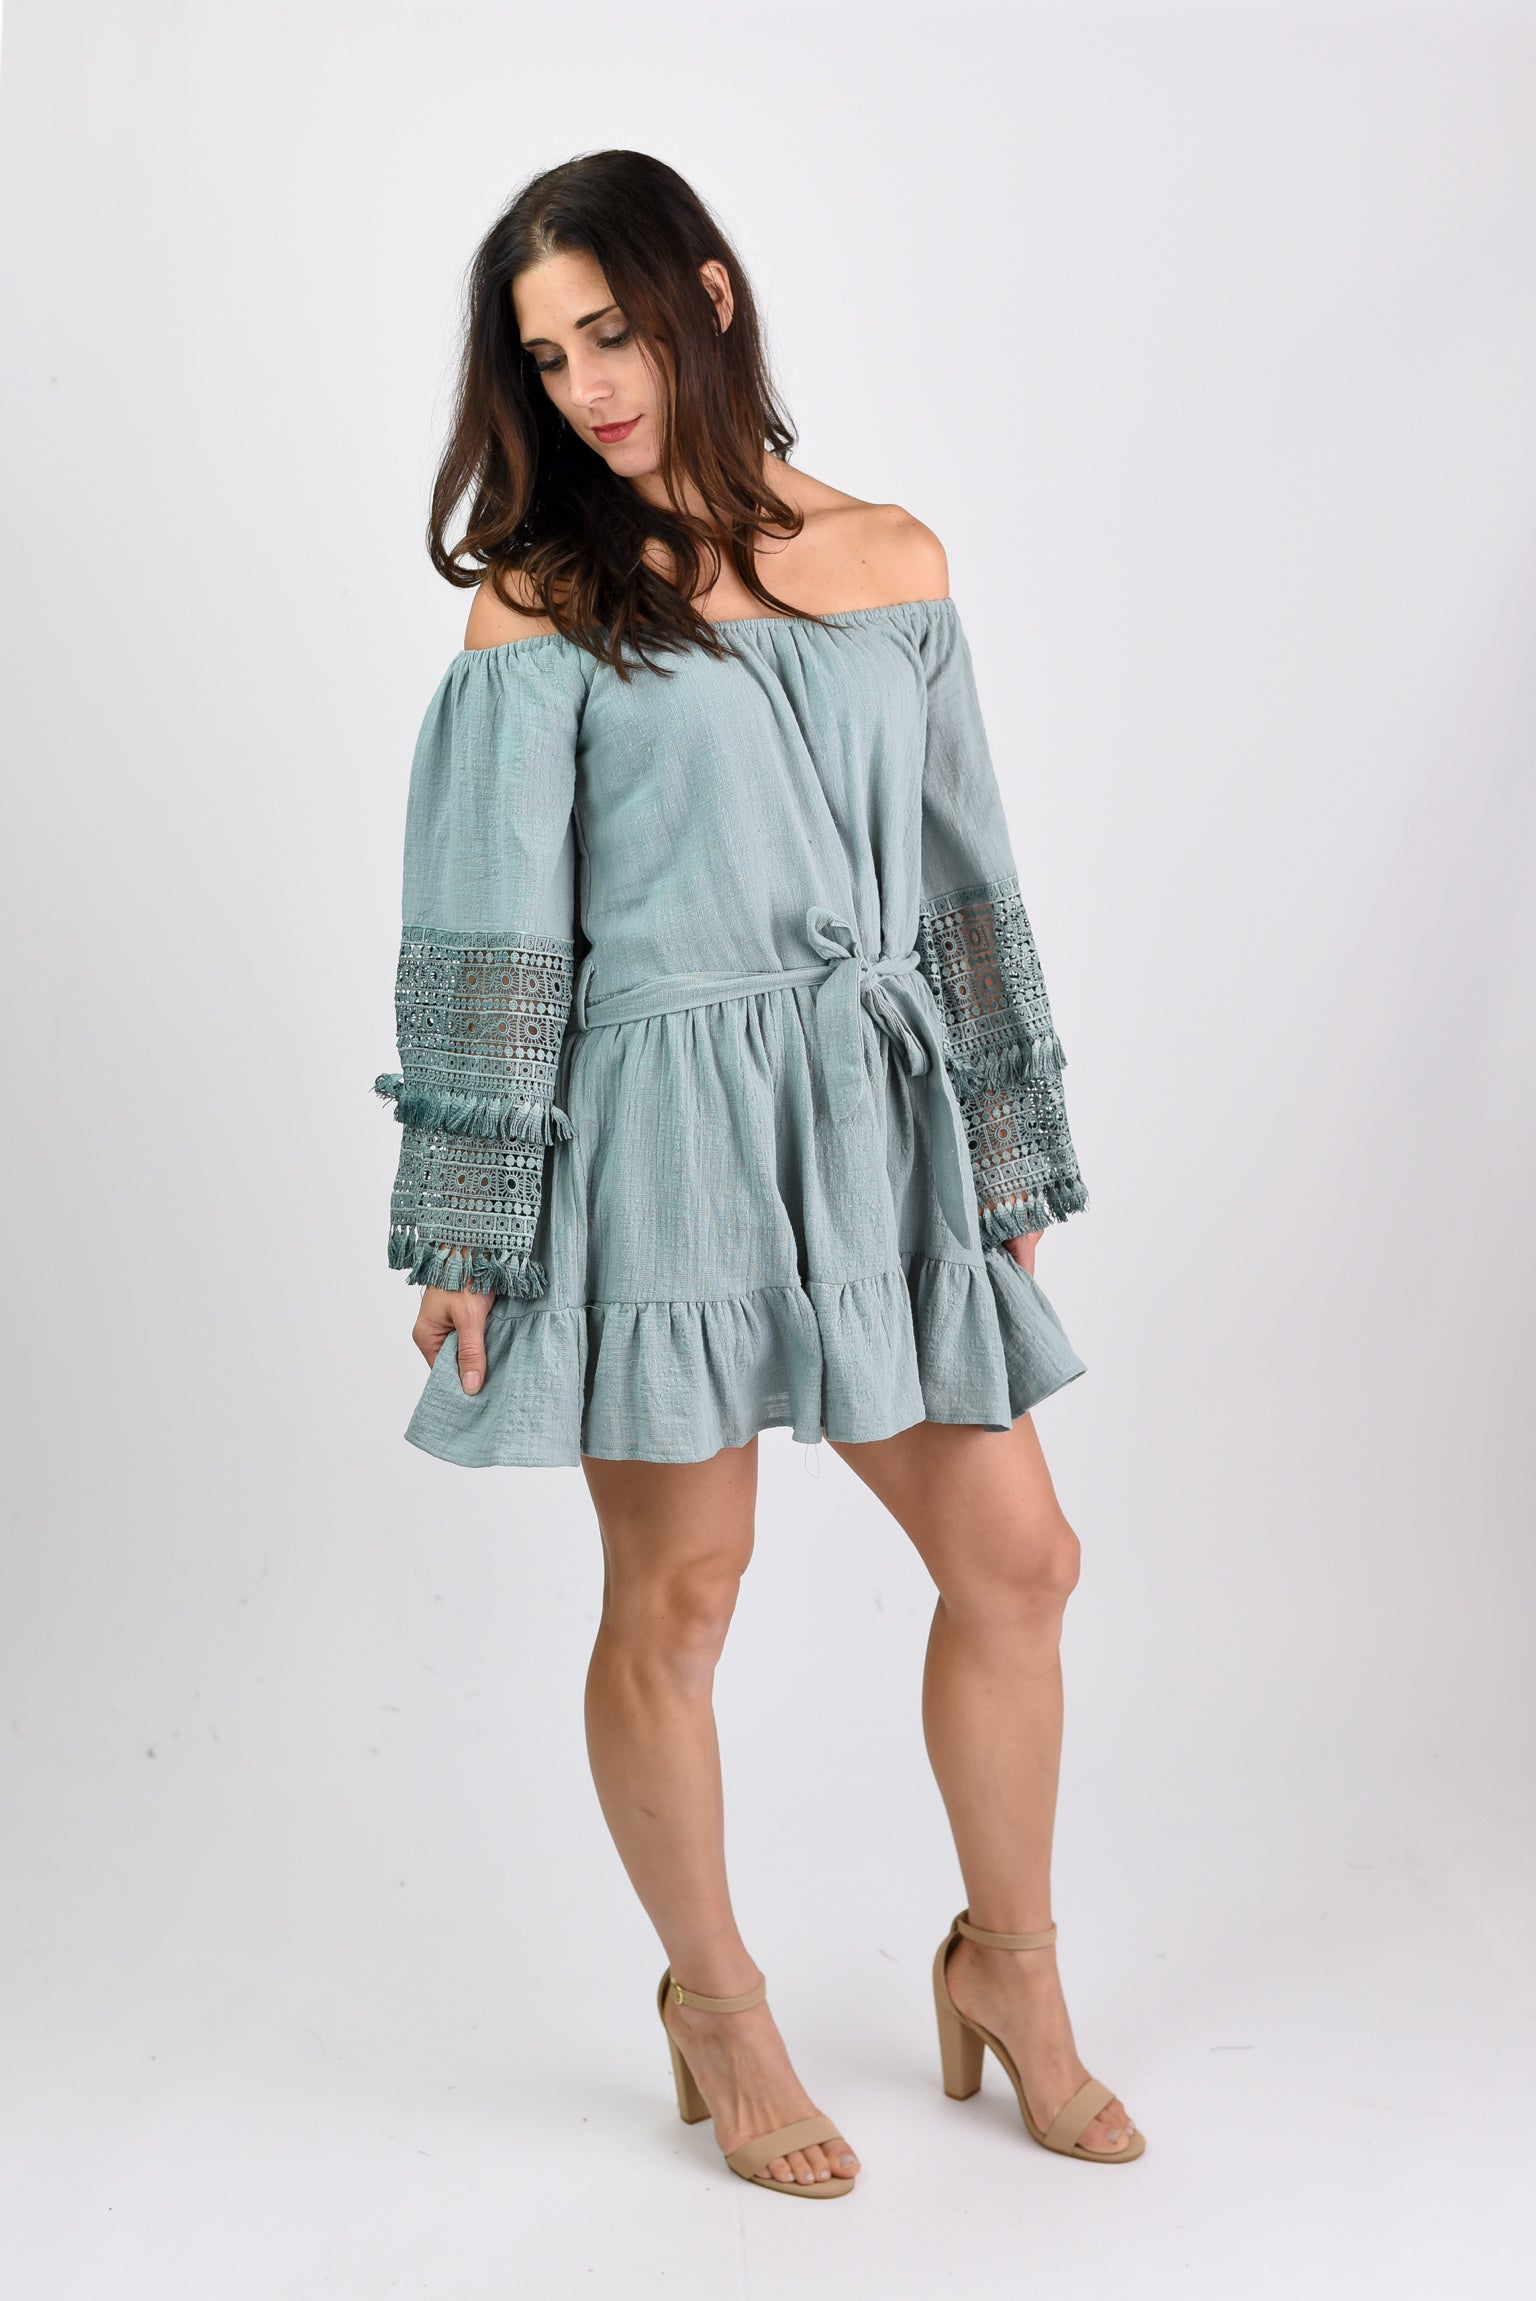 Meant To Rise Teal Crochet Sleeve Off Shoulder Dress